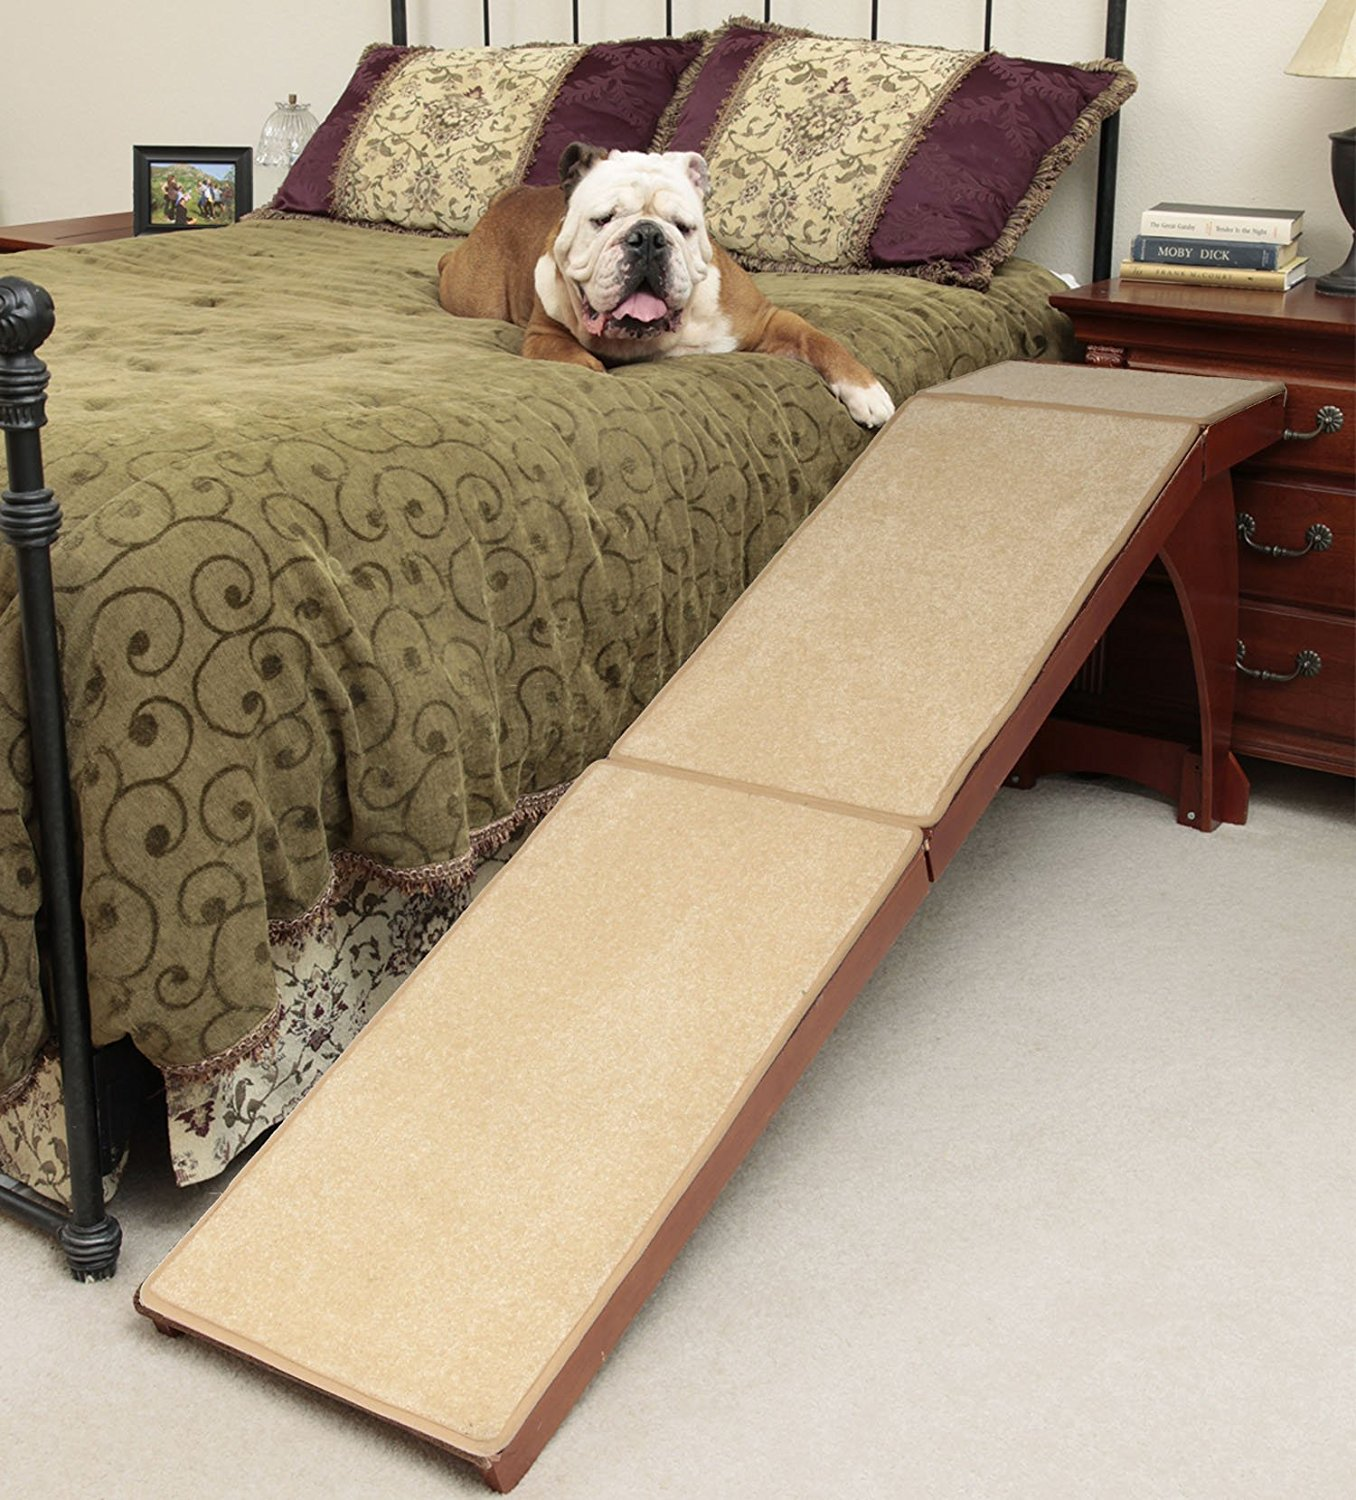 Solvit-Wood-Bedside-Ramp 10 Best Pet Ramps